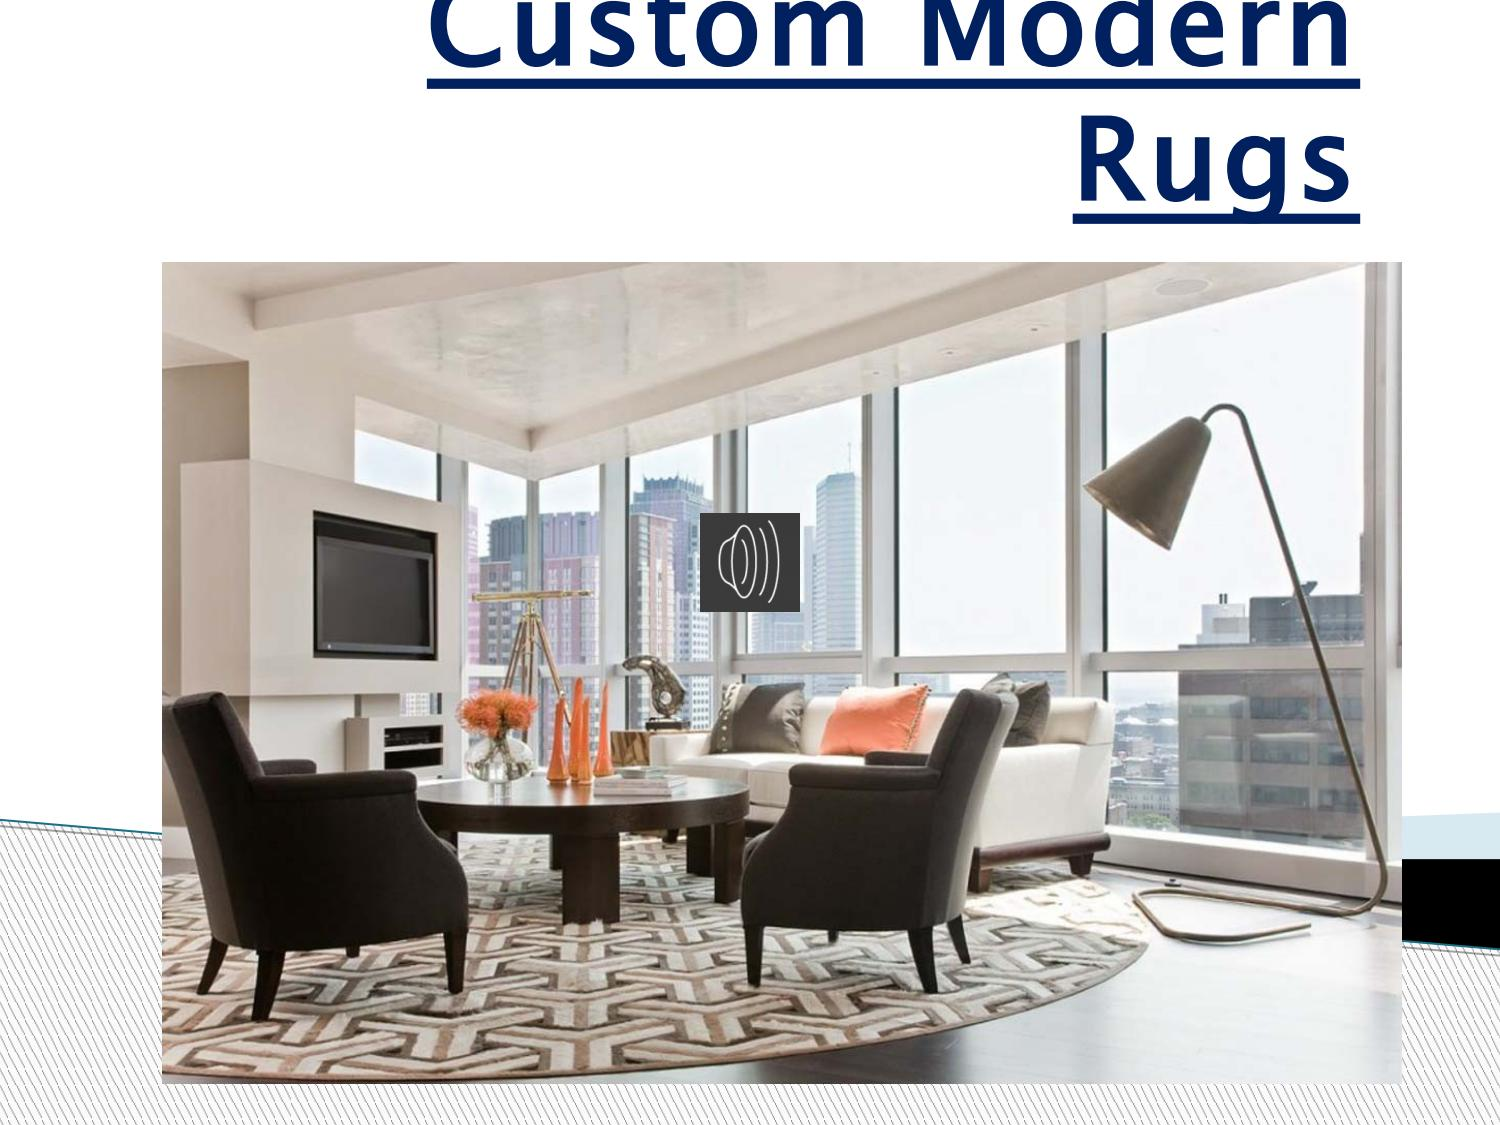 Custom Modern Rugs In Dubai By John Smith Issuu